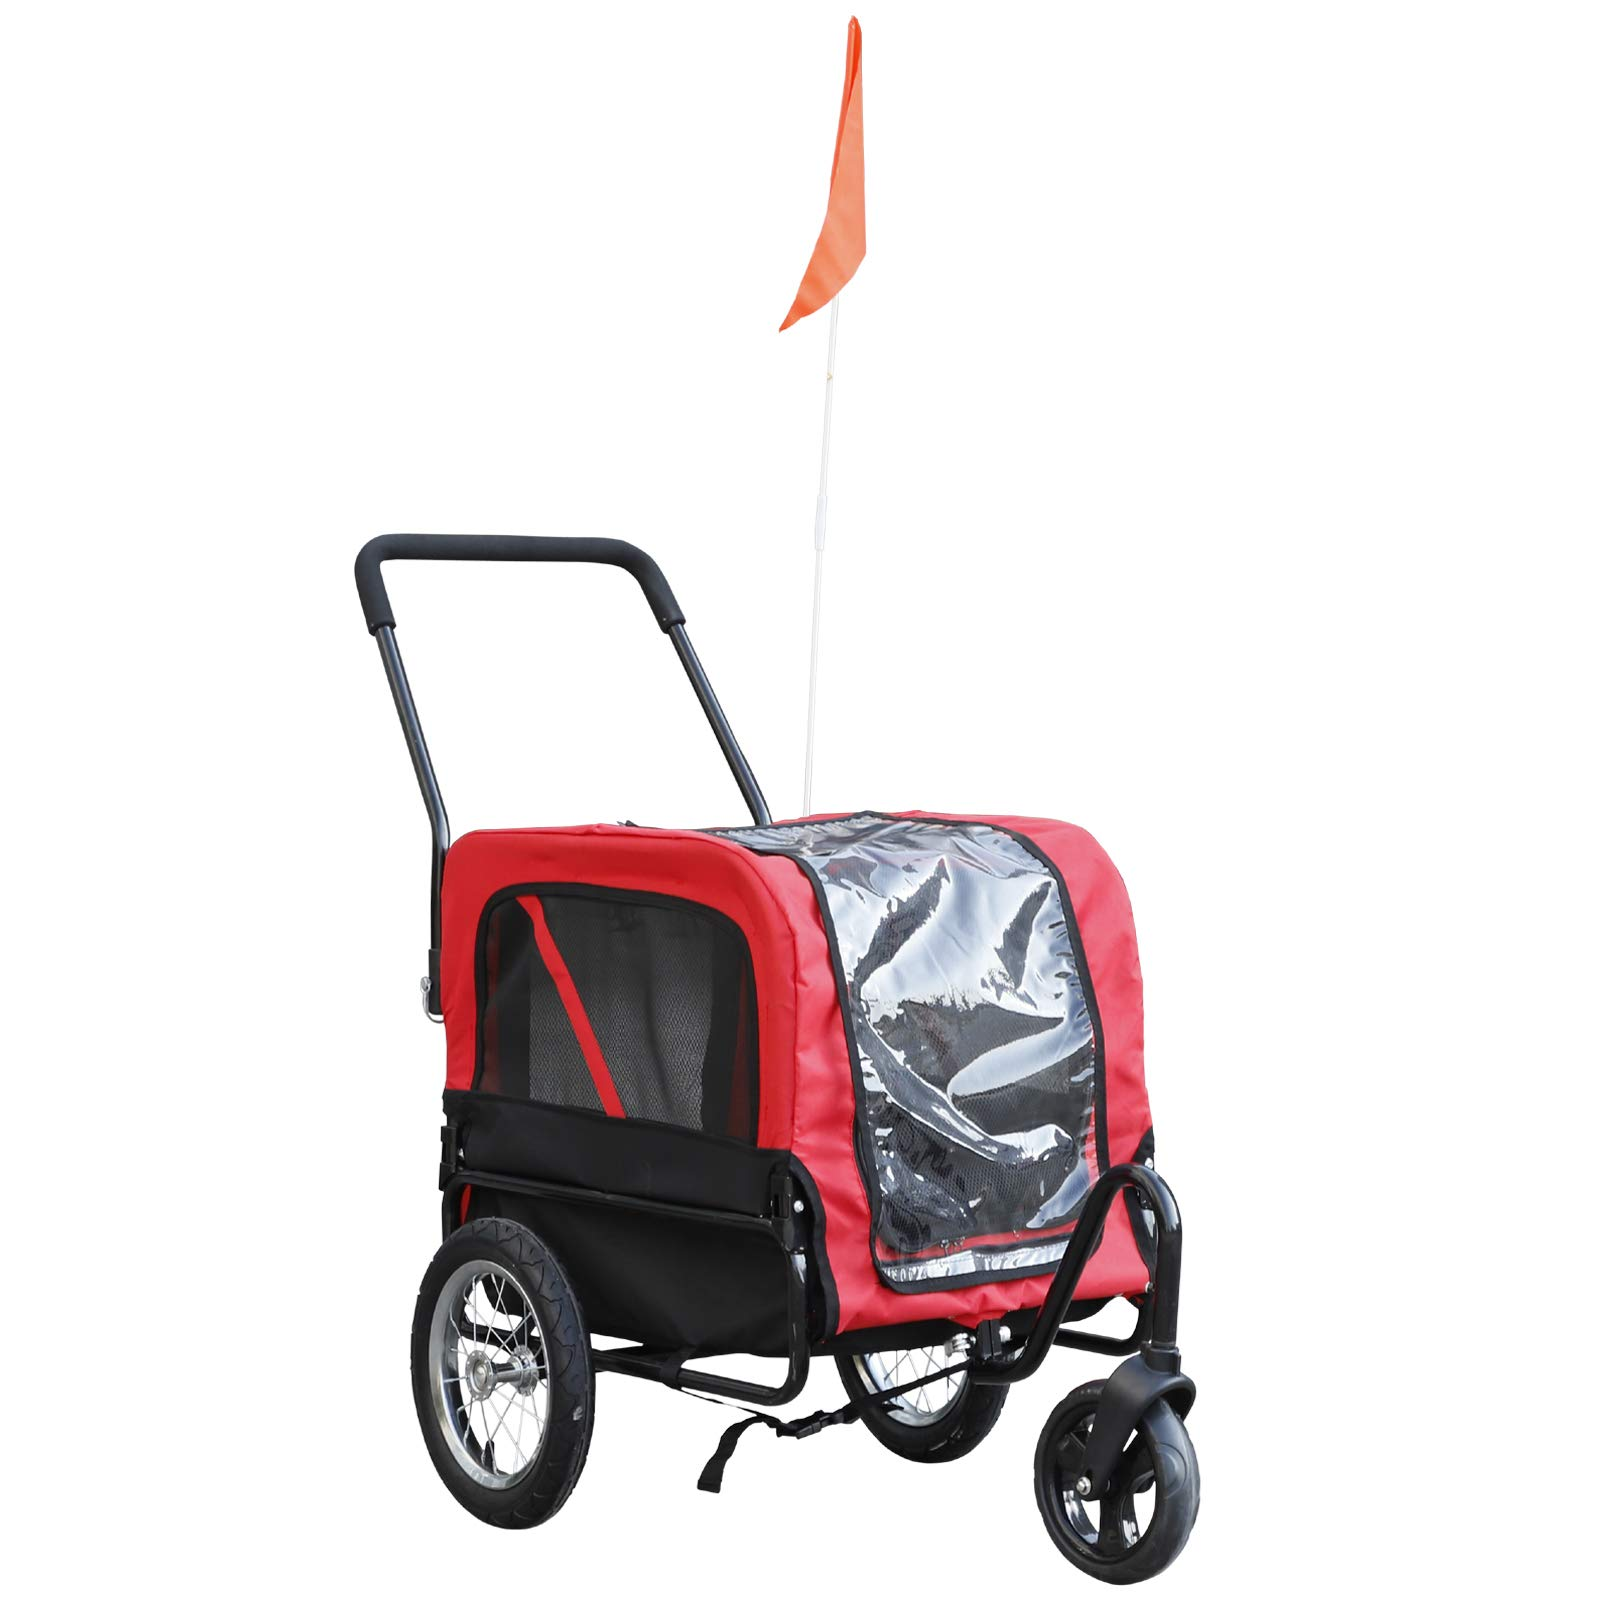 Aosom Elite-Jr 2-In-1 Dog Pet Bicycle Trailer / Stroller With Swivel Wheel - Red / Black by Aosom